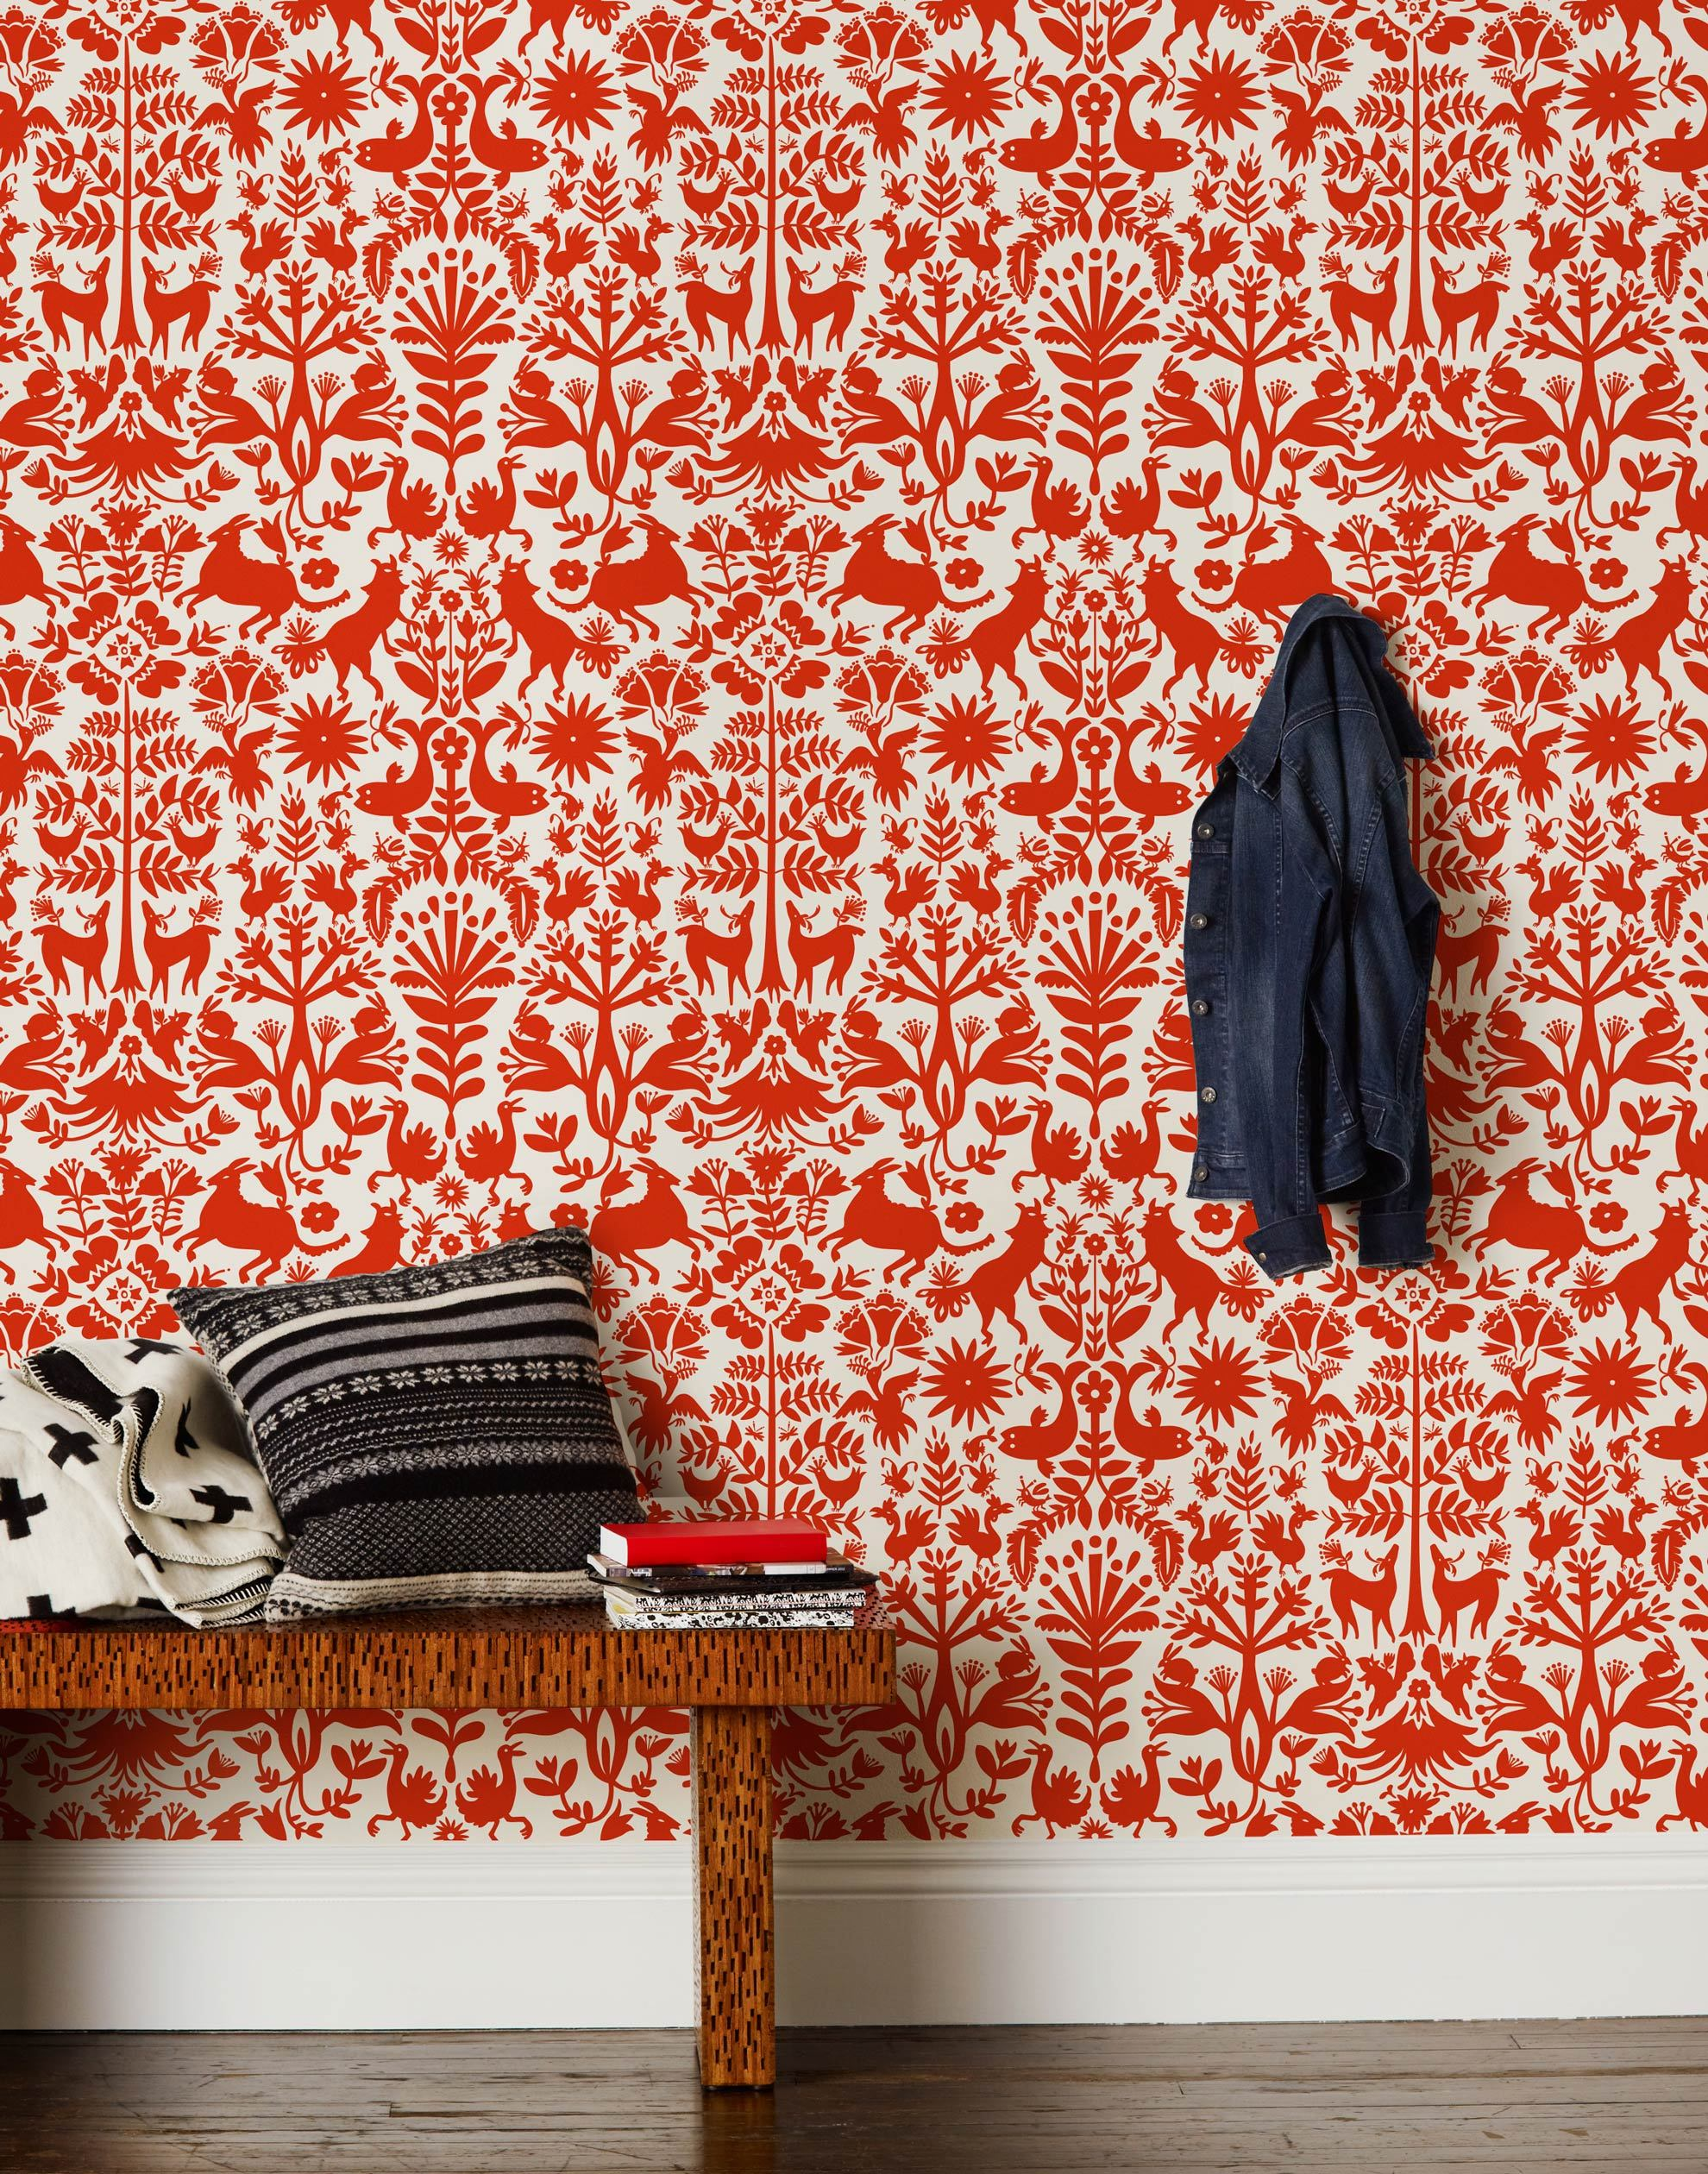 Otomi (Red) wallpaper featuring a tomato red Otomi meets Scandinavian folk pattern on a white background | Hygge & West x Emily Isabella